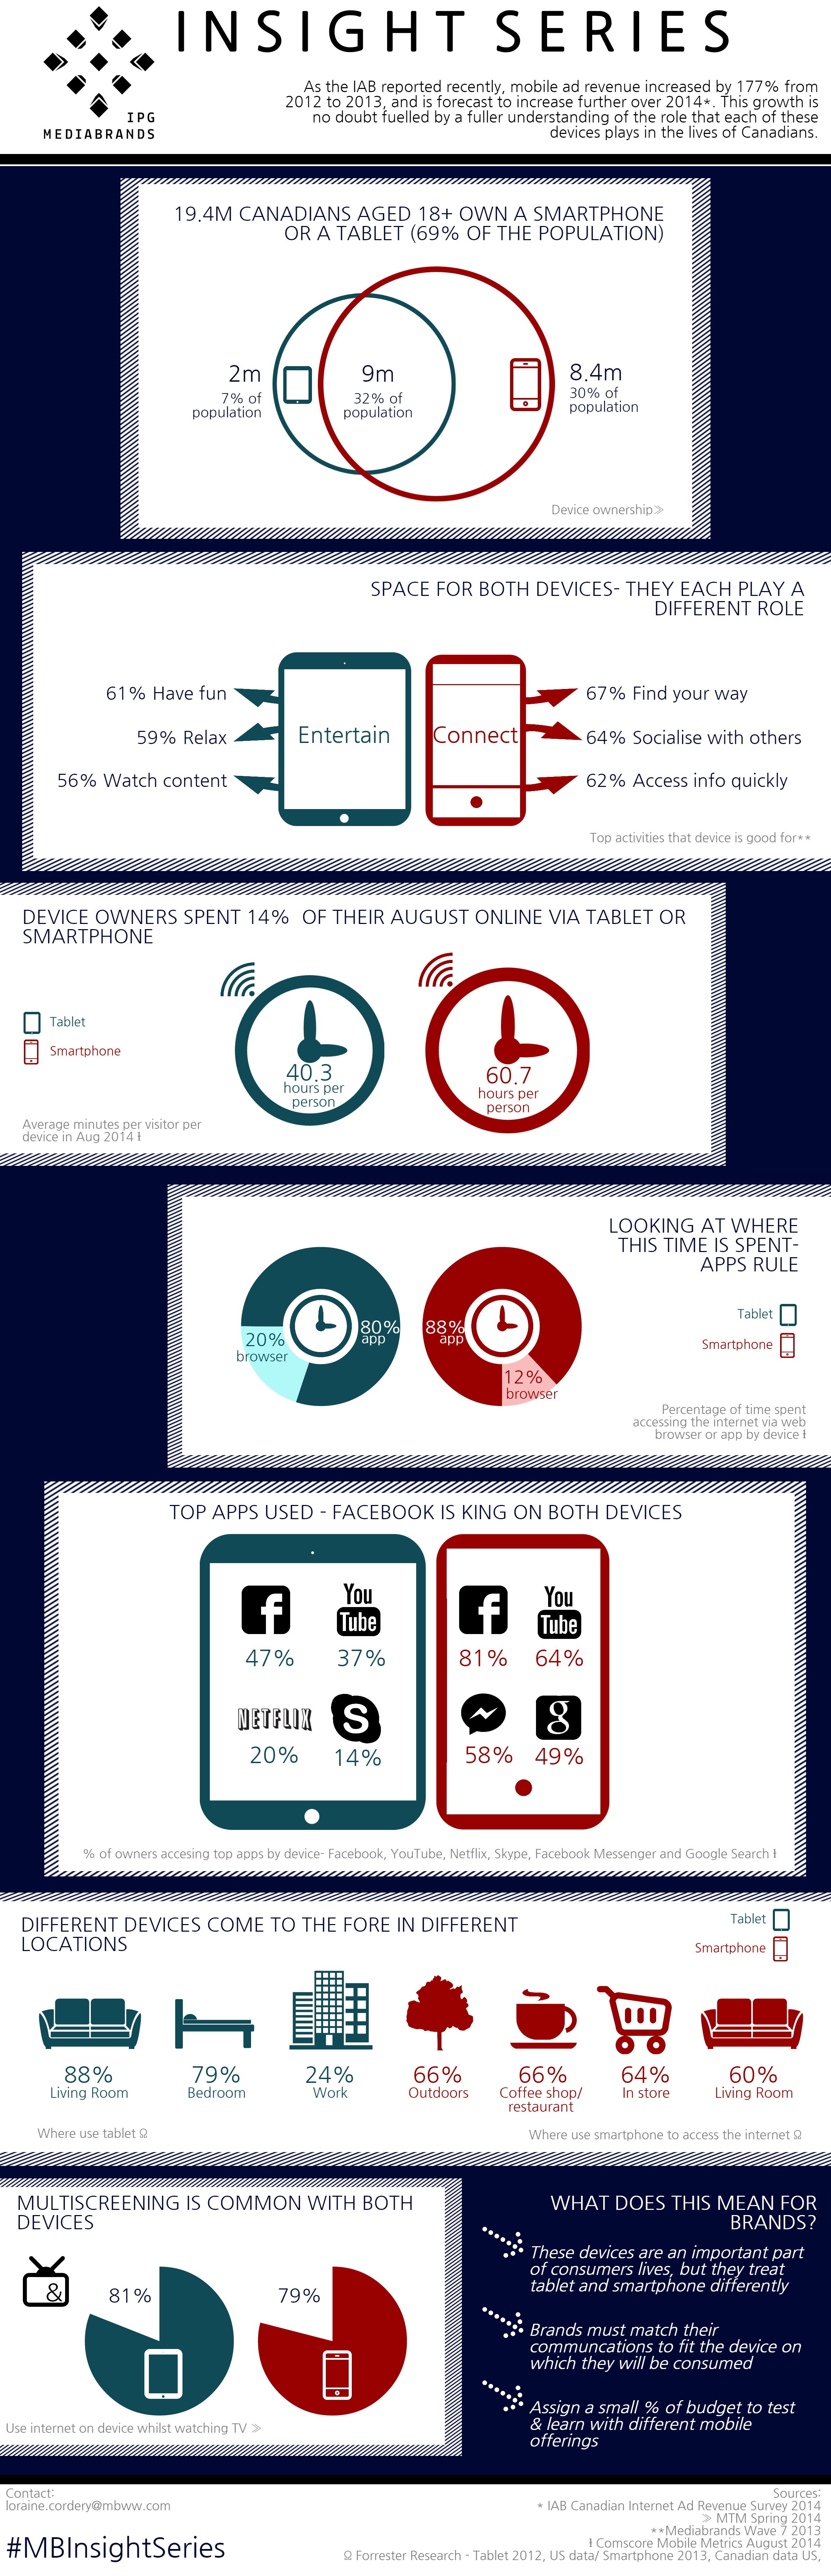 Mediabrands Device Differences Infographic (2)